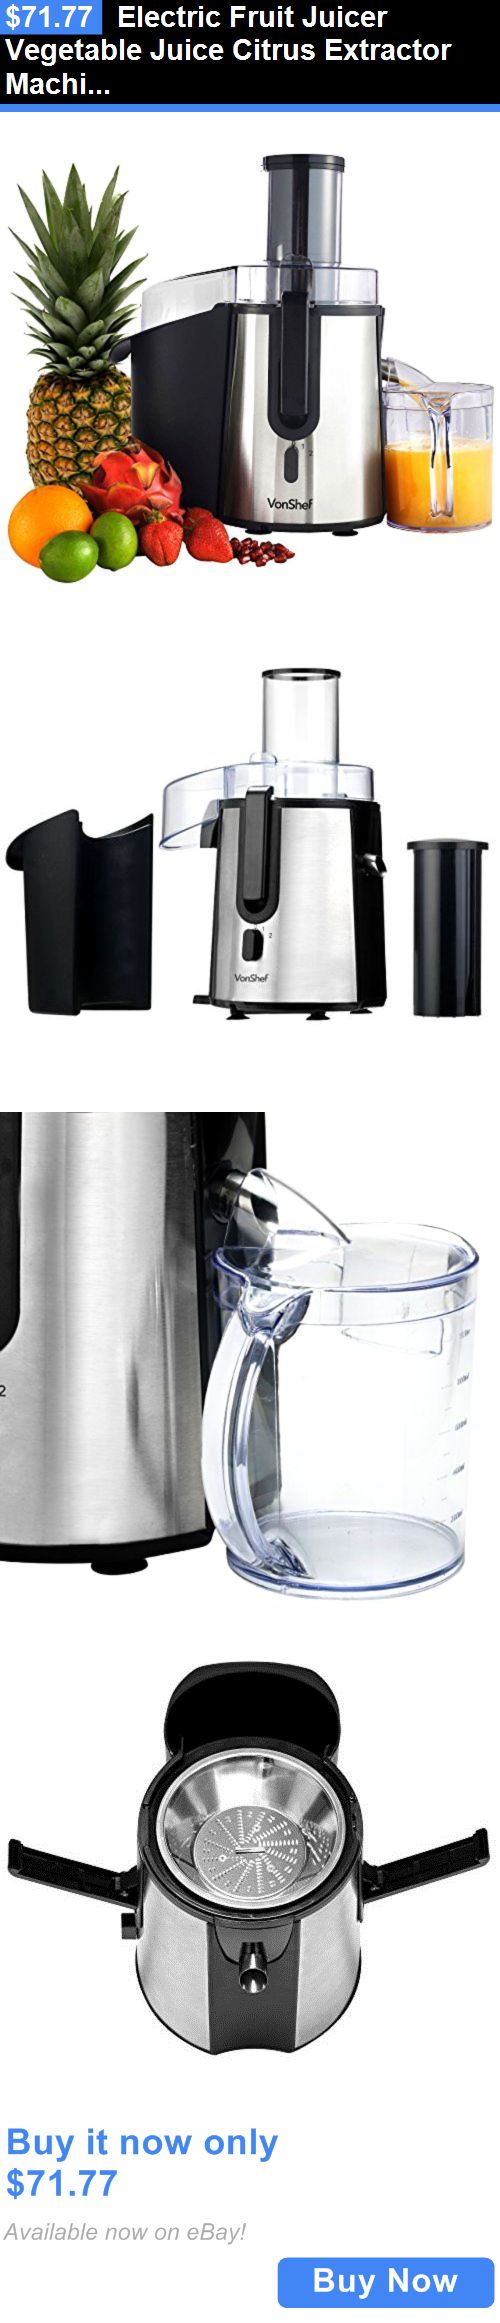 Kitchen small appliance circuit - Small Kitchen Appliances Electric Fruit Juicer Vegetable Juice Citrus Extractor Machine Maker Blender New Buy